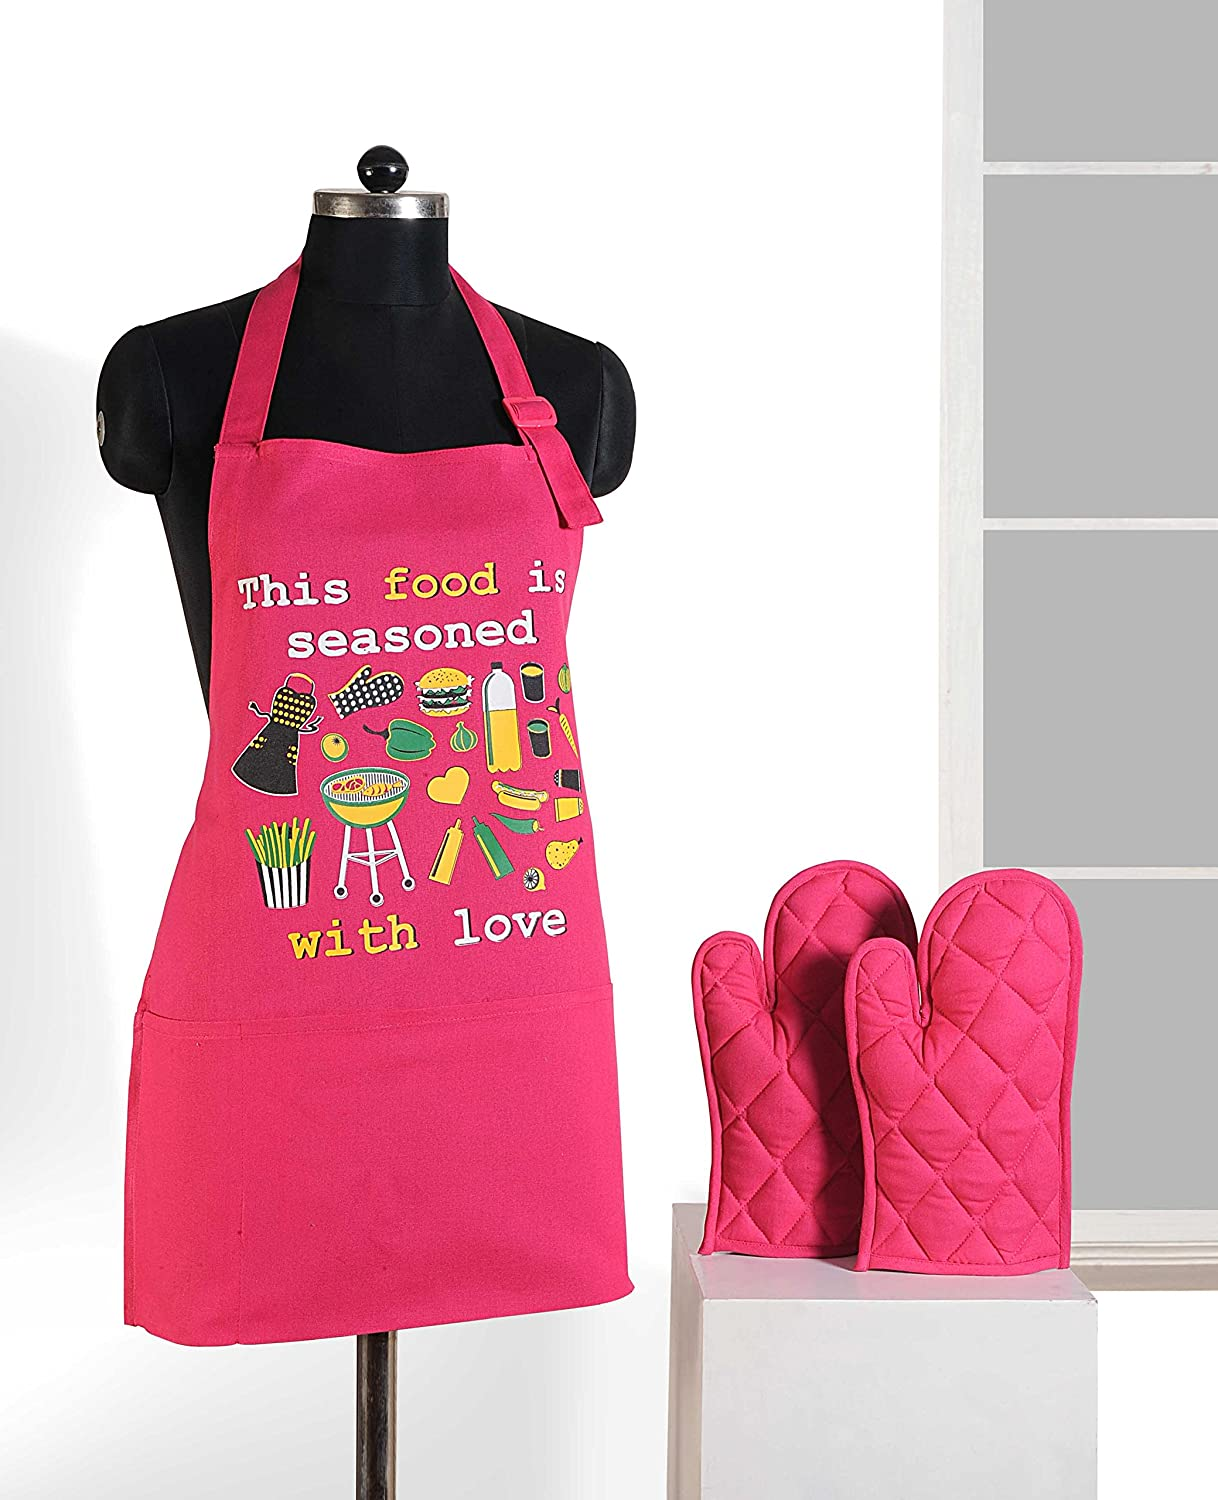 ShalinIndia Graphic Screen Print Cooking Apron & Oven Mitt Set - 100% Cotton - Kitchen Gifts for Women